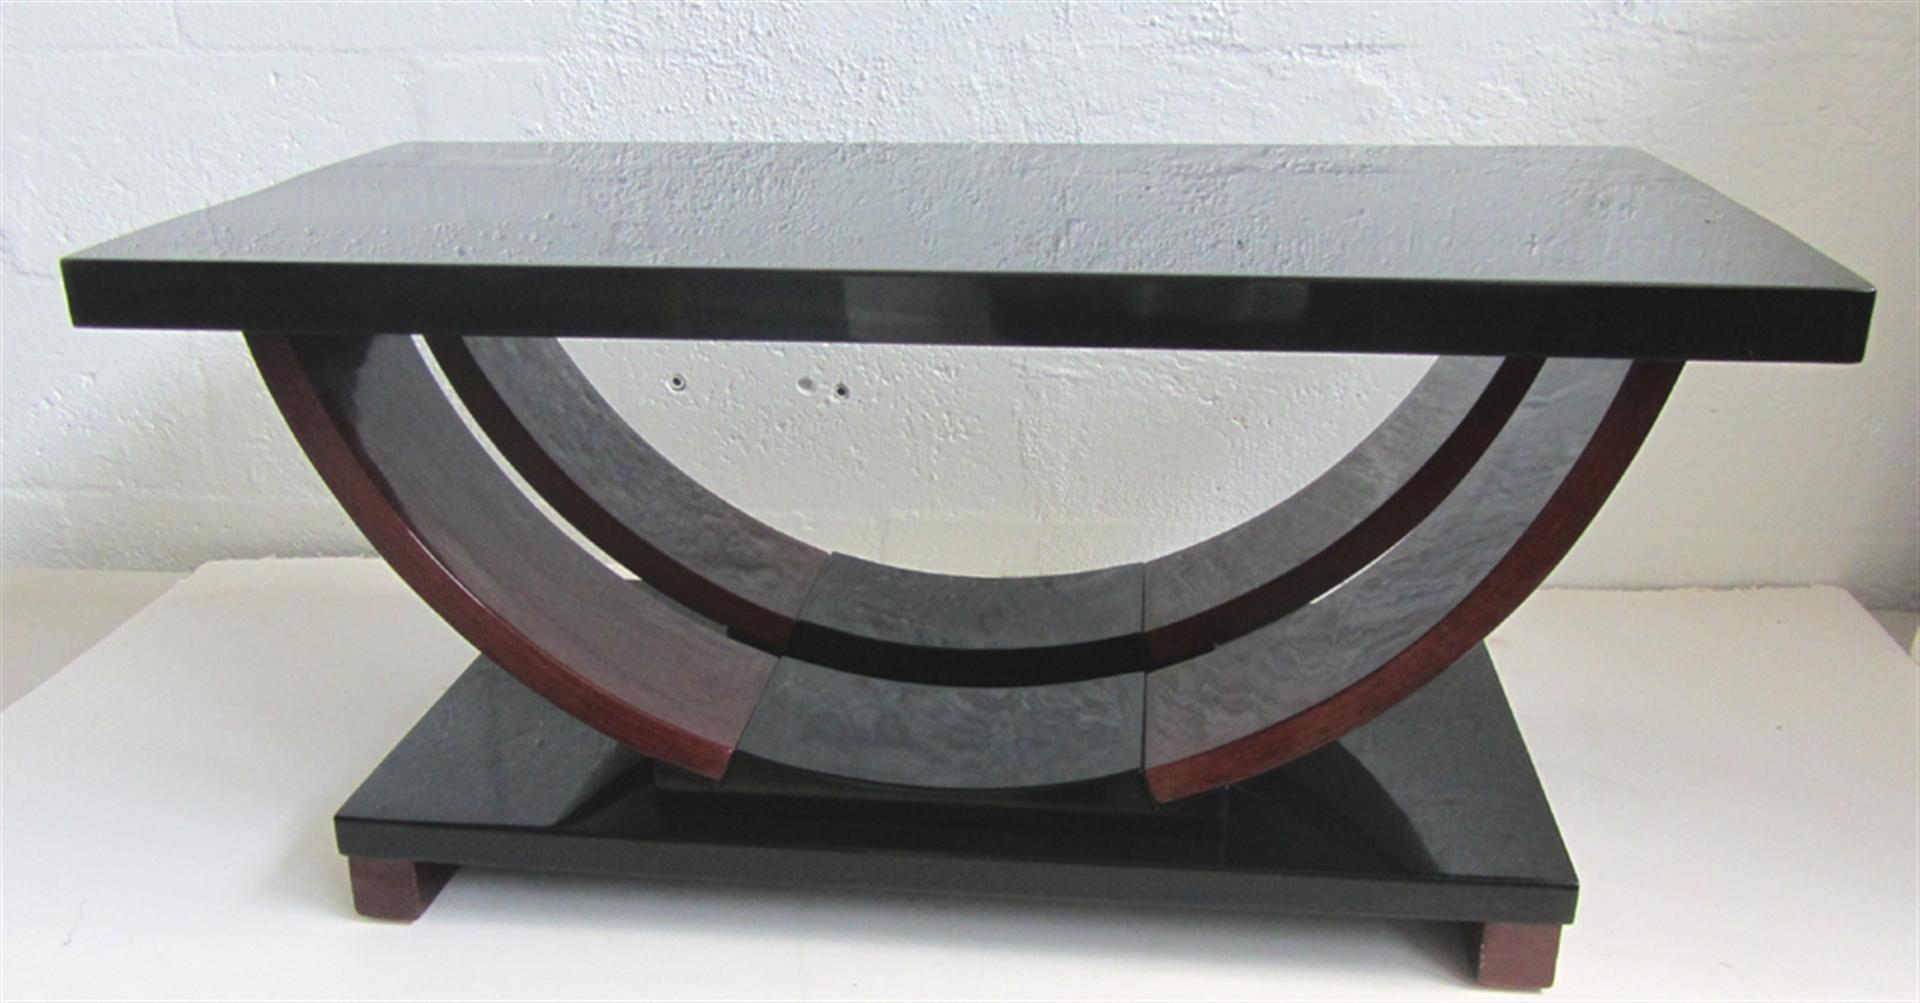 Modernage American Art Deco Streamline Design Coffee Table